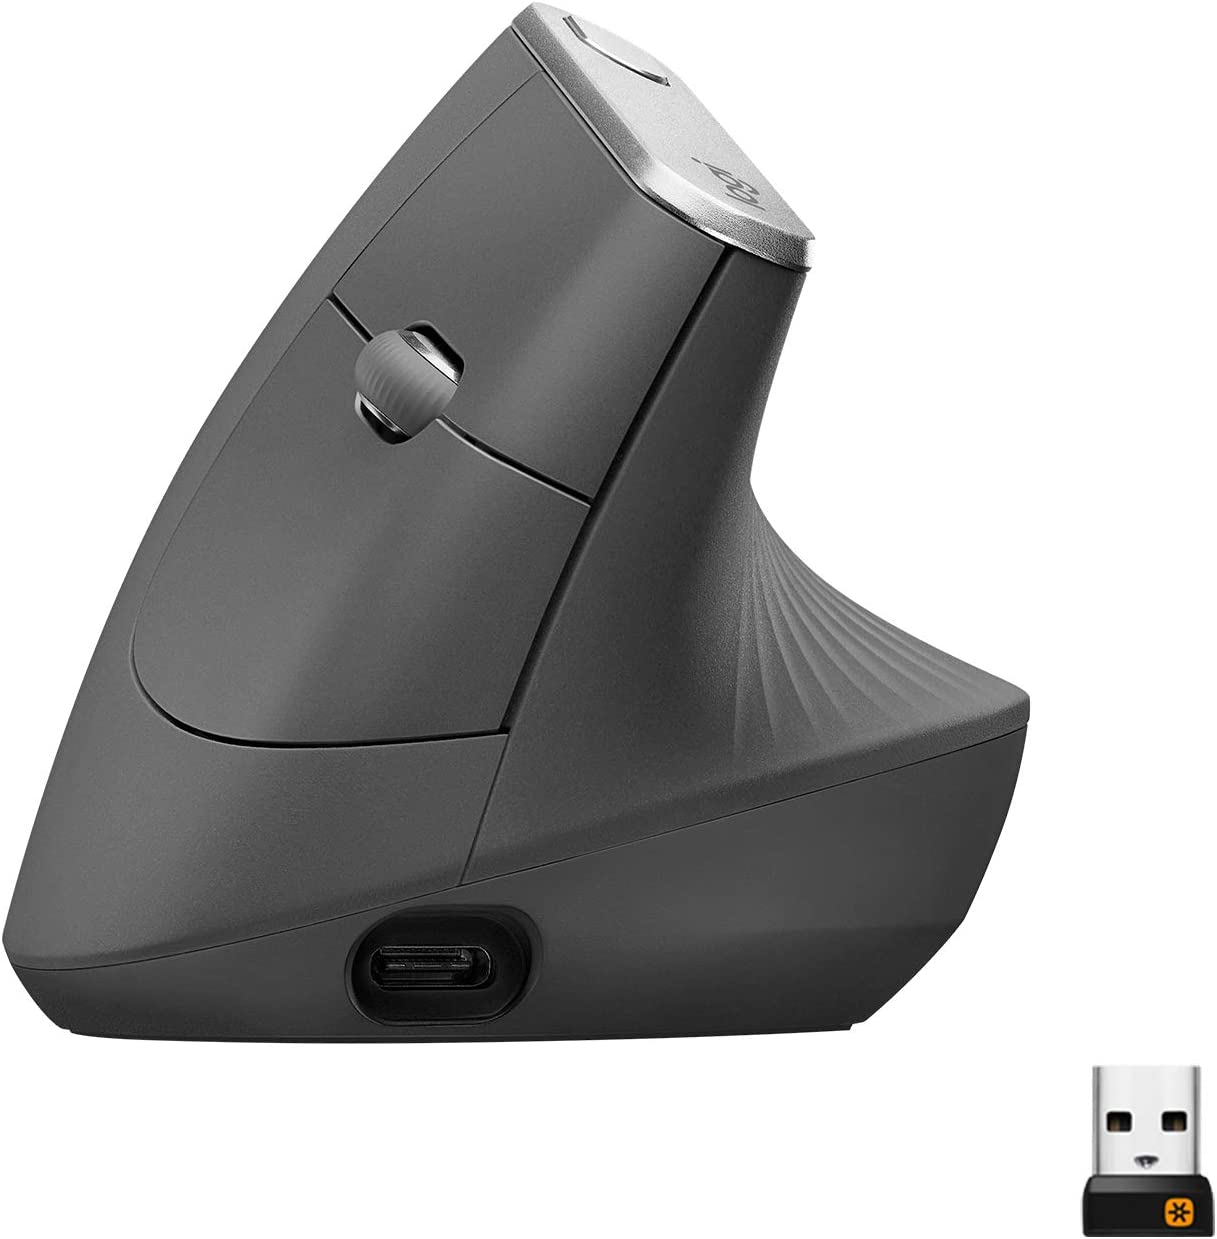 Our pick as the ergonomic best business mouse - the Logitec MX Vertical